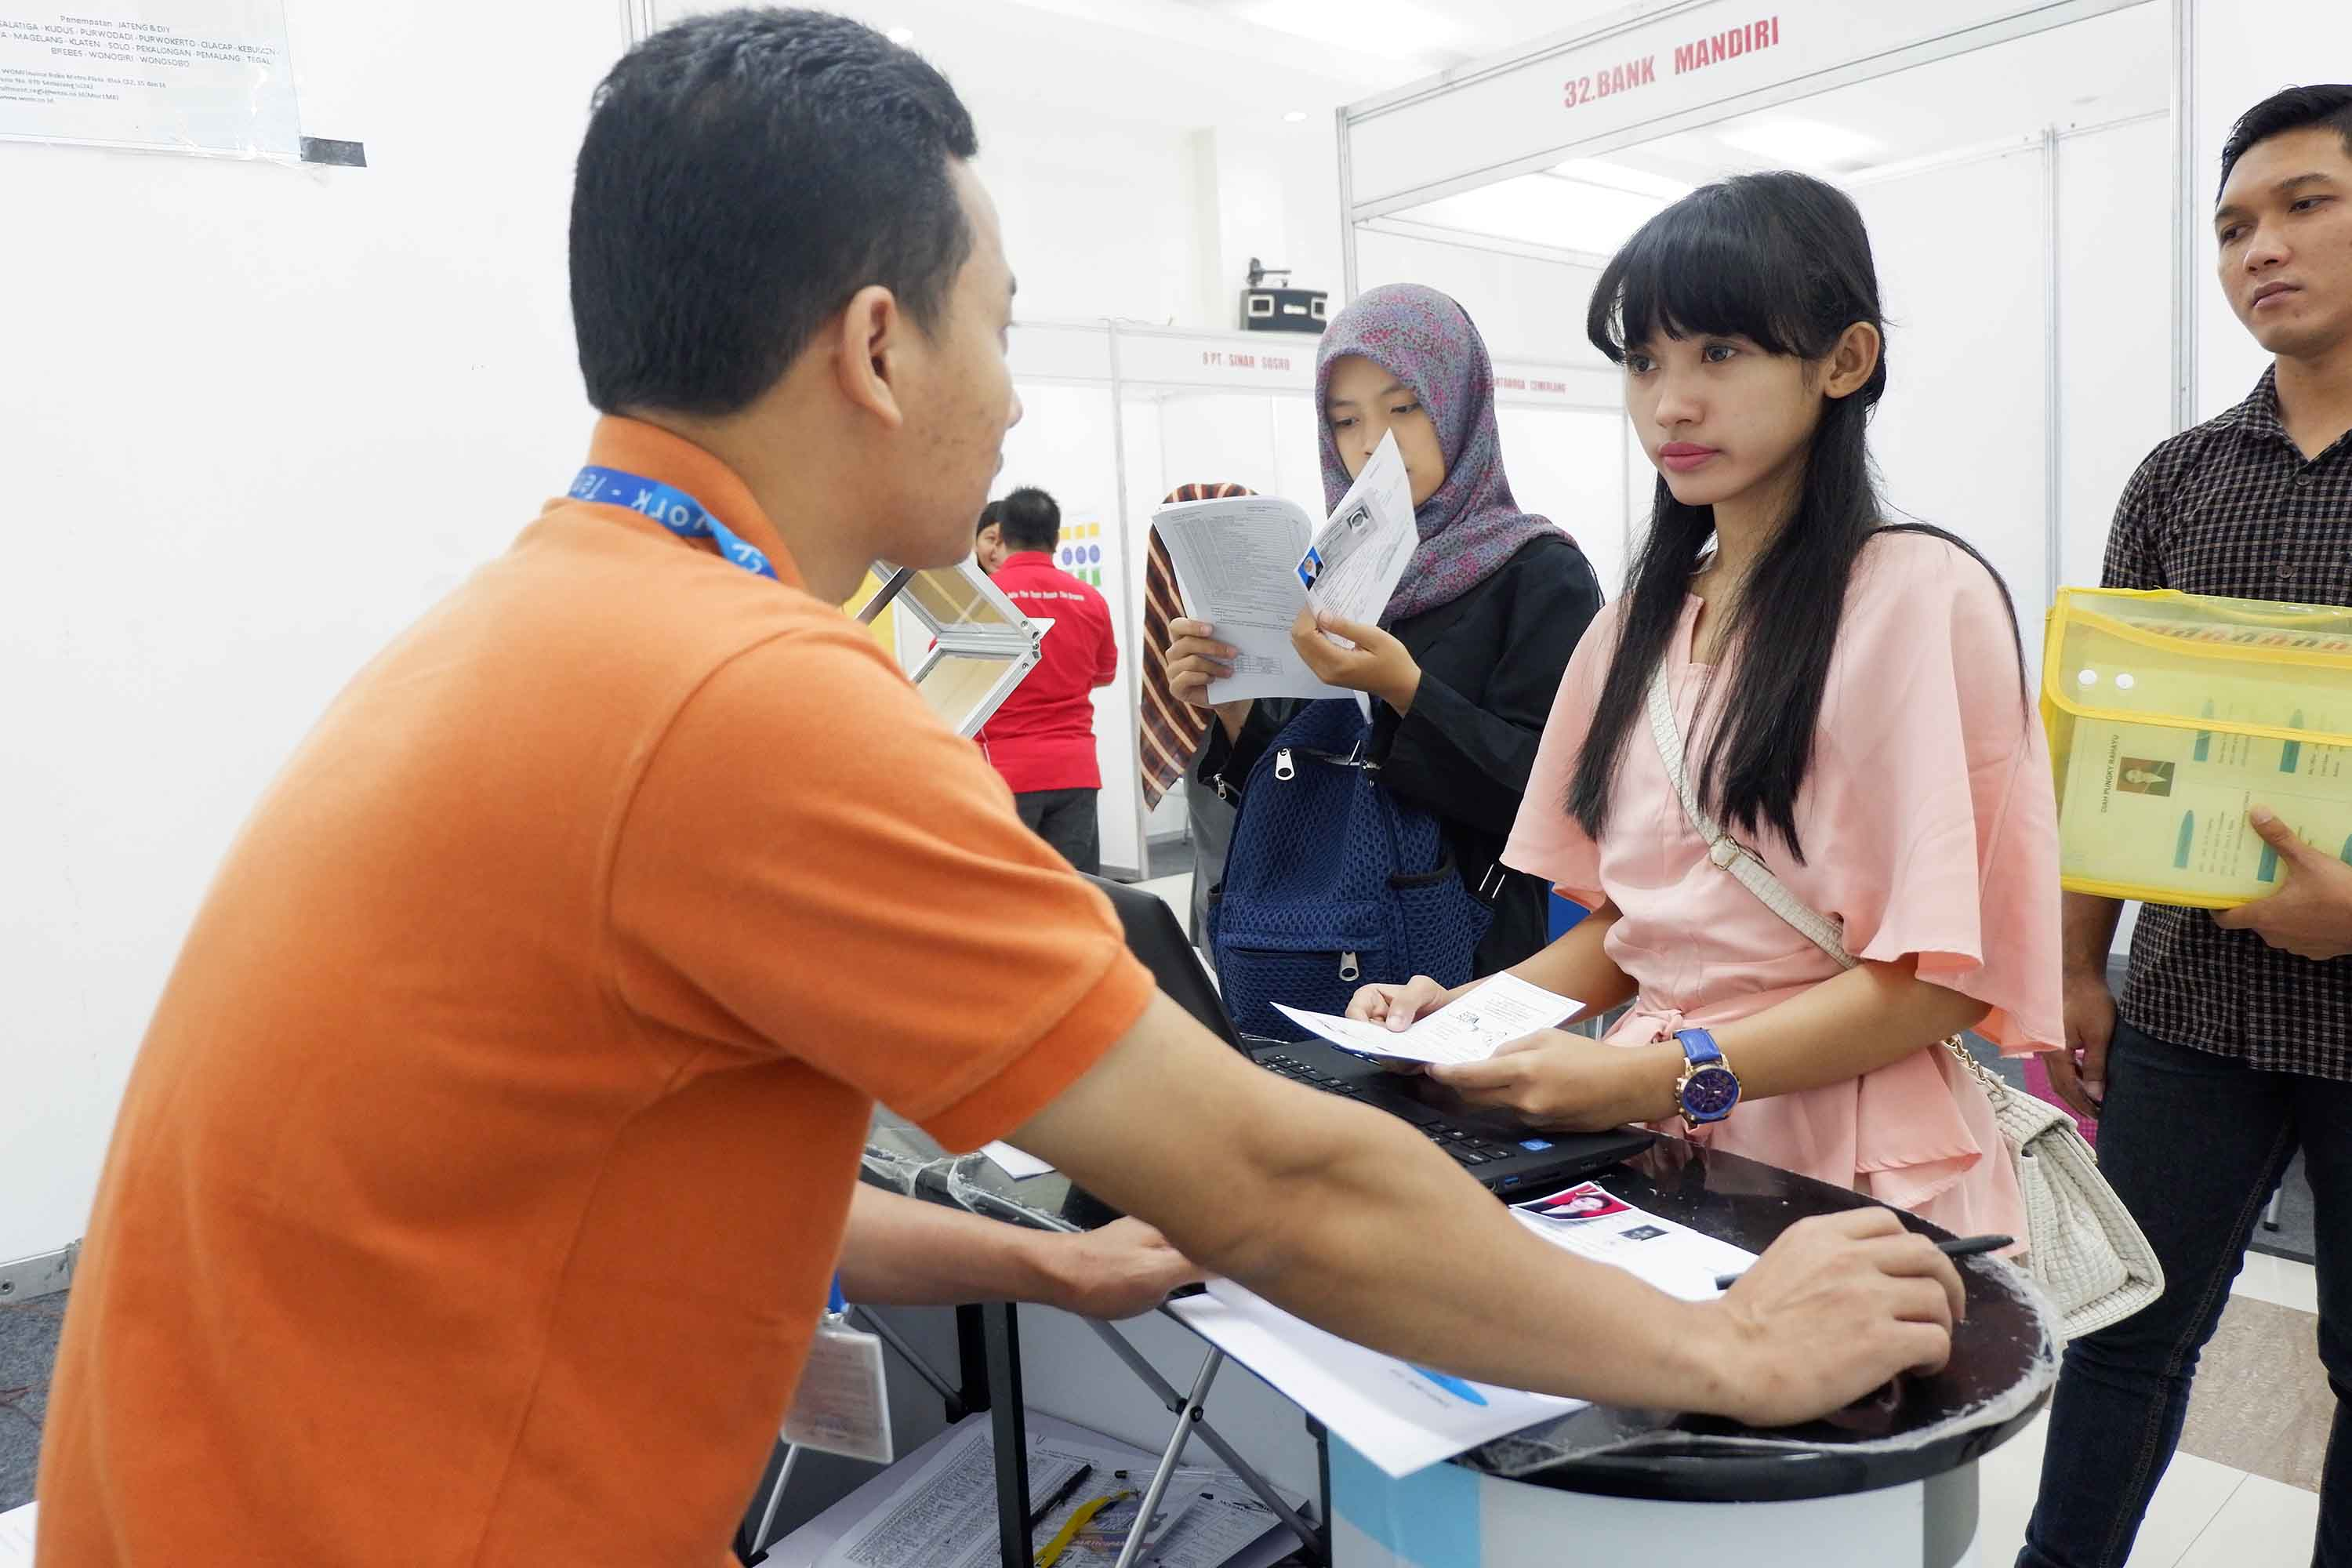 THOUSANDS OF JOB SEEKERS GO FOR BANKING IN UDINUS' 18TH JOB FAIR